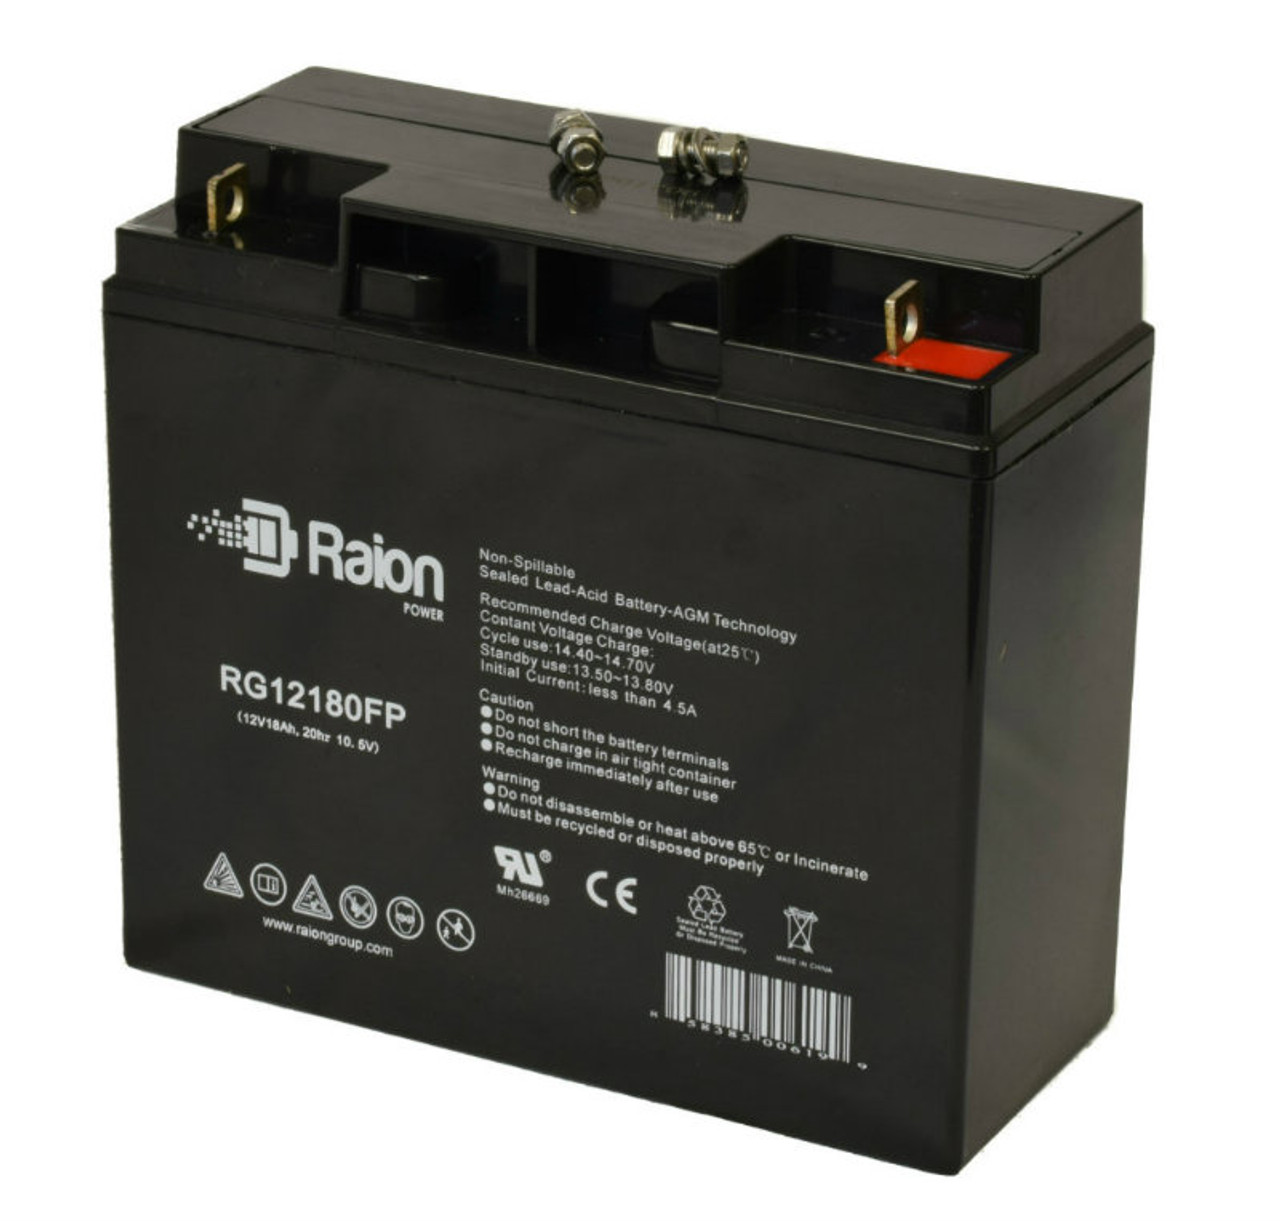 Raion Power RG12180FP Replacement Battery For Merits Pioneer 1 S235 Deluxe (1 Pack)